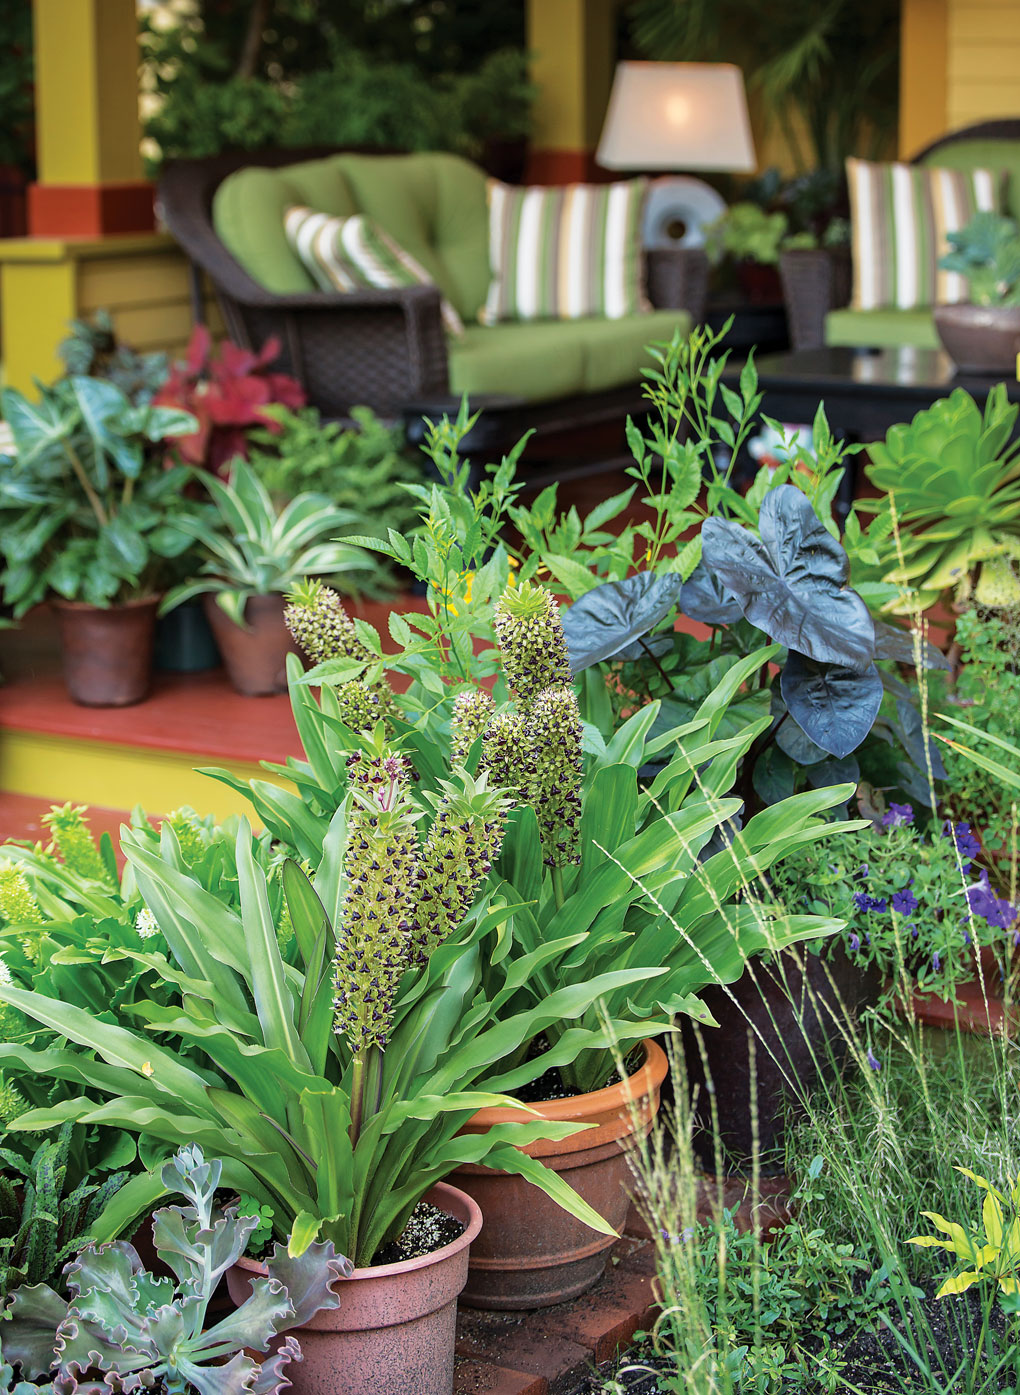 Planters along a front porch steps hold various cultivars of pineapple lilies and a deep purple Colocasia 'Kona Coffee'.